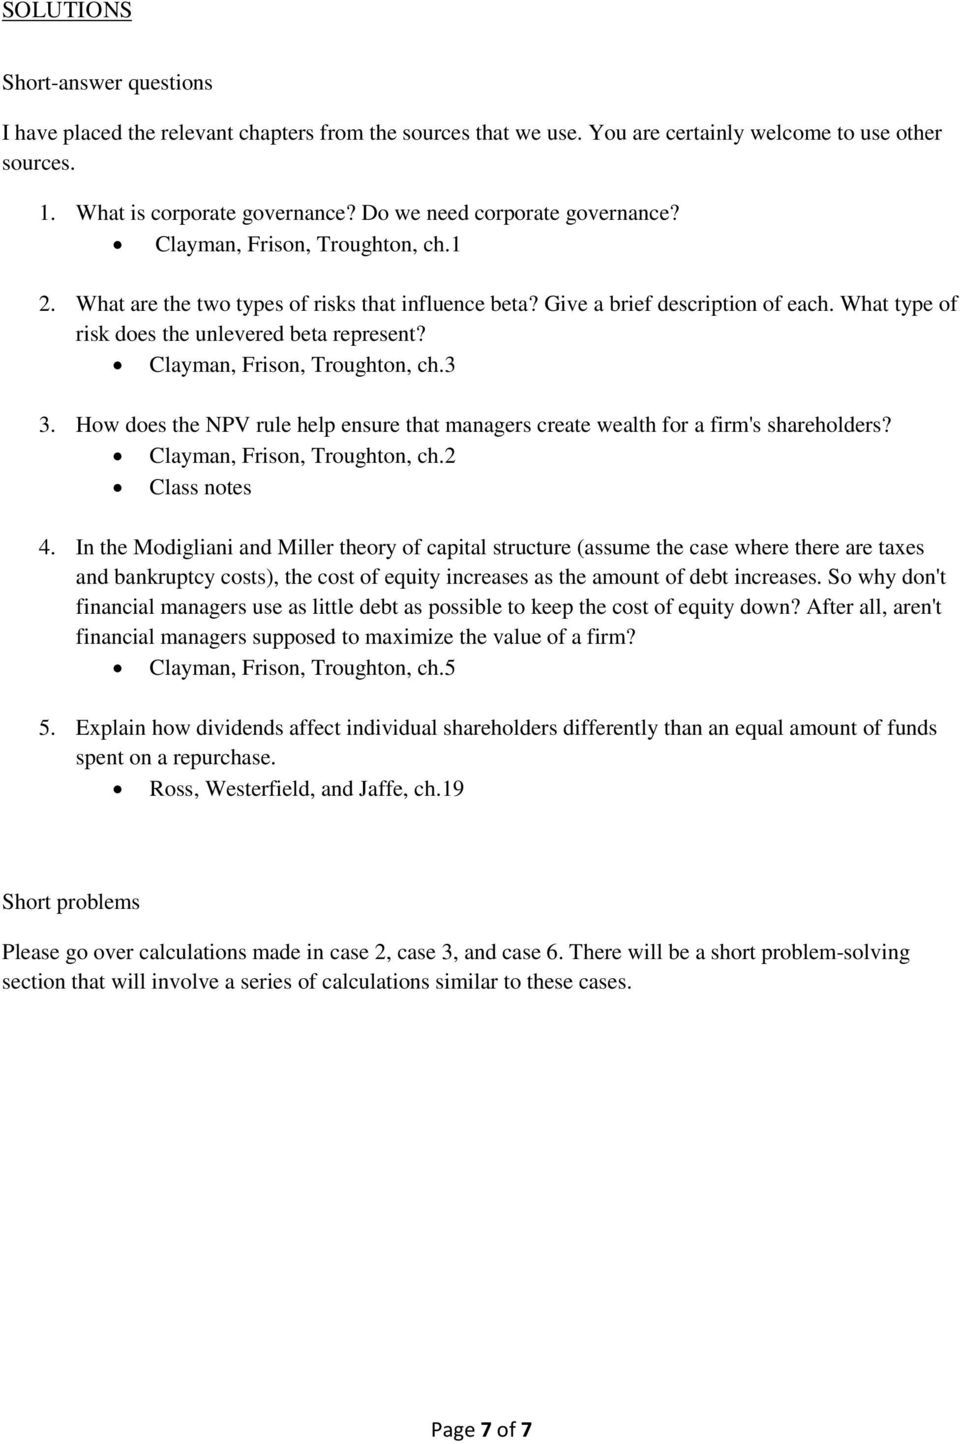 SOLUTIONS  Practice questions  Multiple Choice - PDF